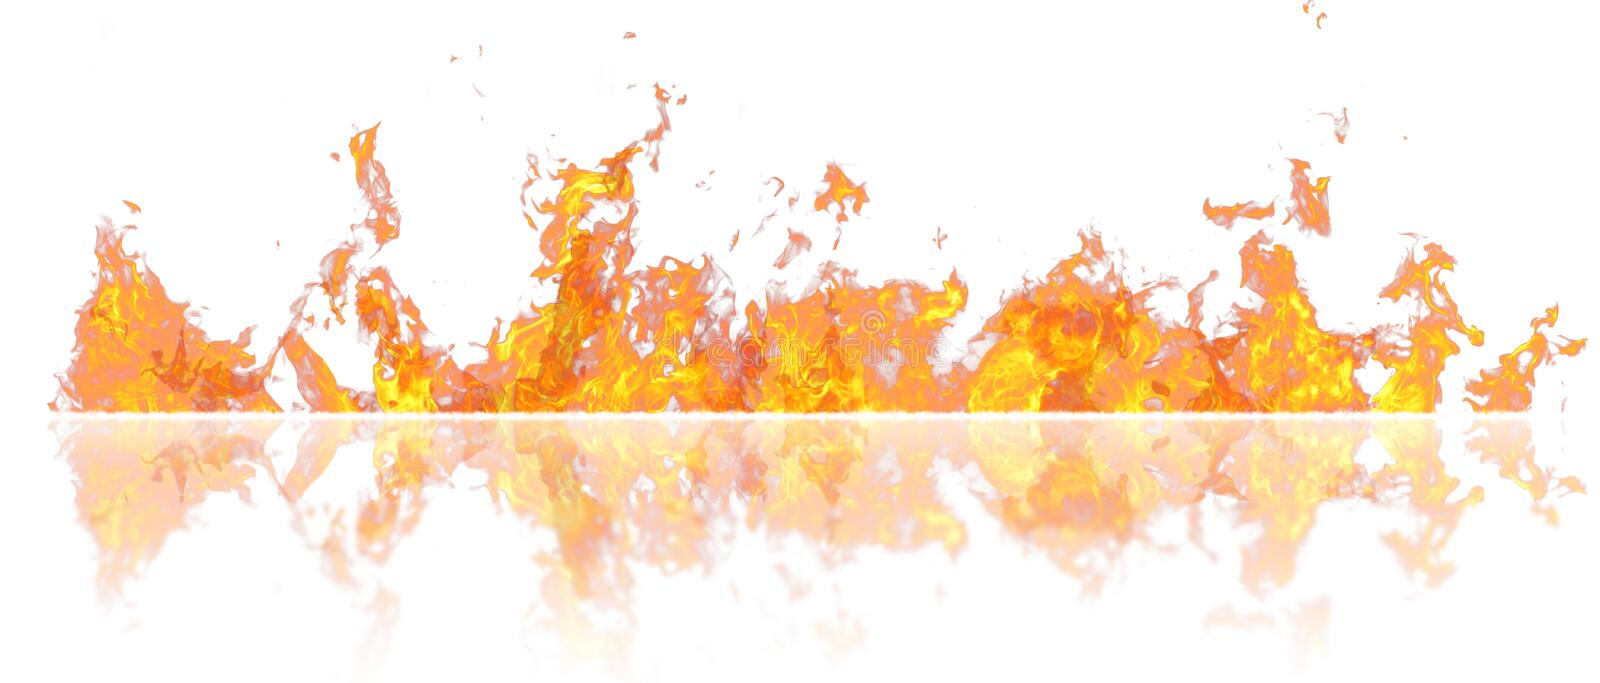 Real line of fire flames with reflection isolated on white background. Mockup on white of wall of fire. royalty free illustration